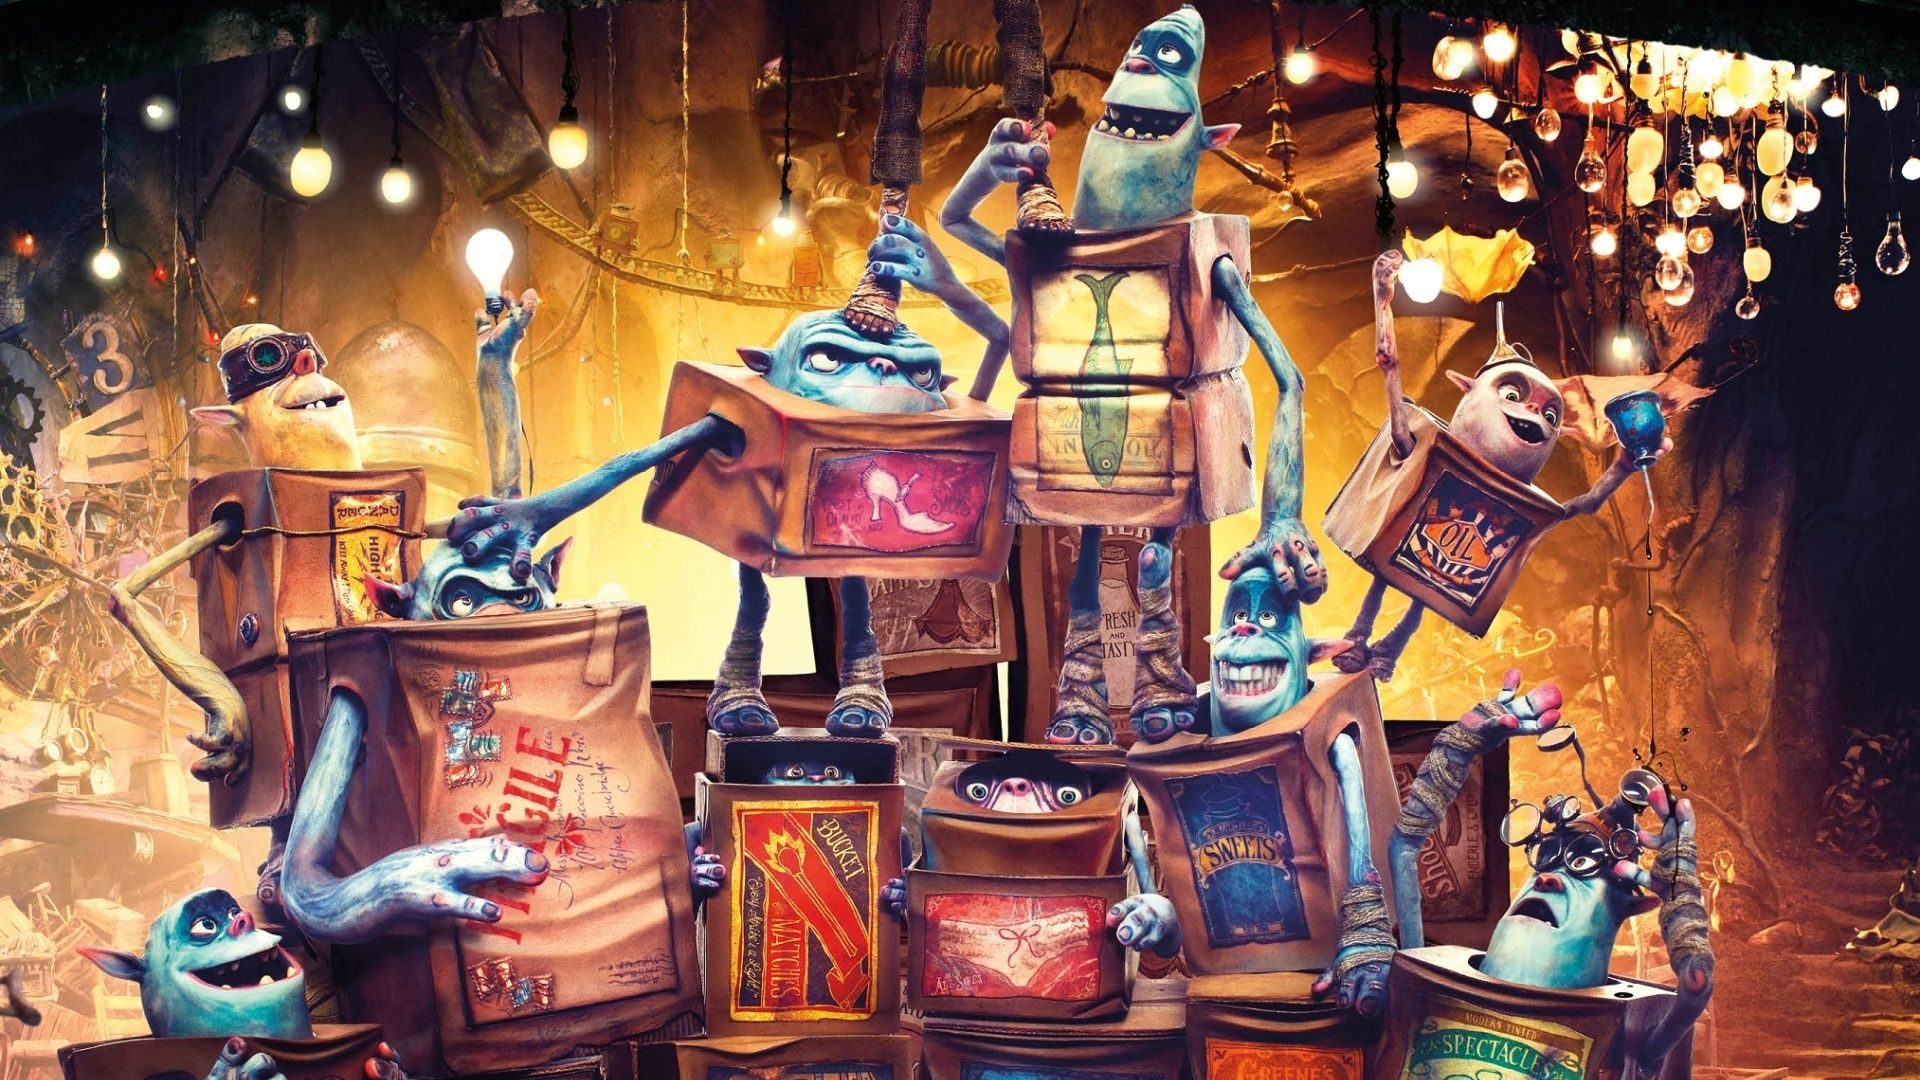 Find out: The Boxtrolls Movie wallpaper on  http://hdpicorner.com/the-boxtrolls-movie/